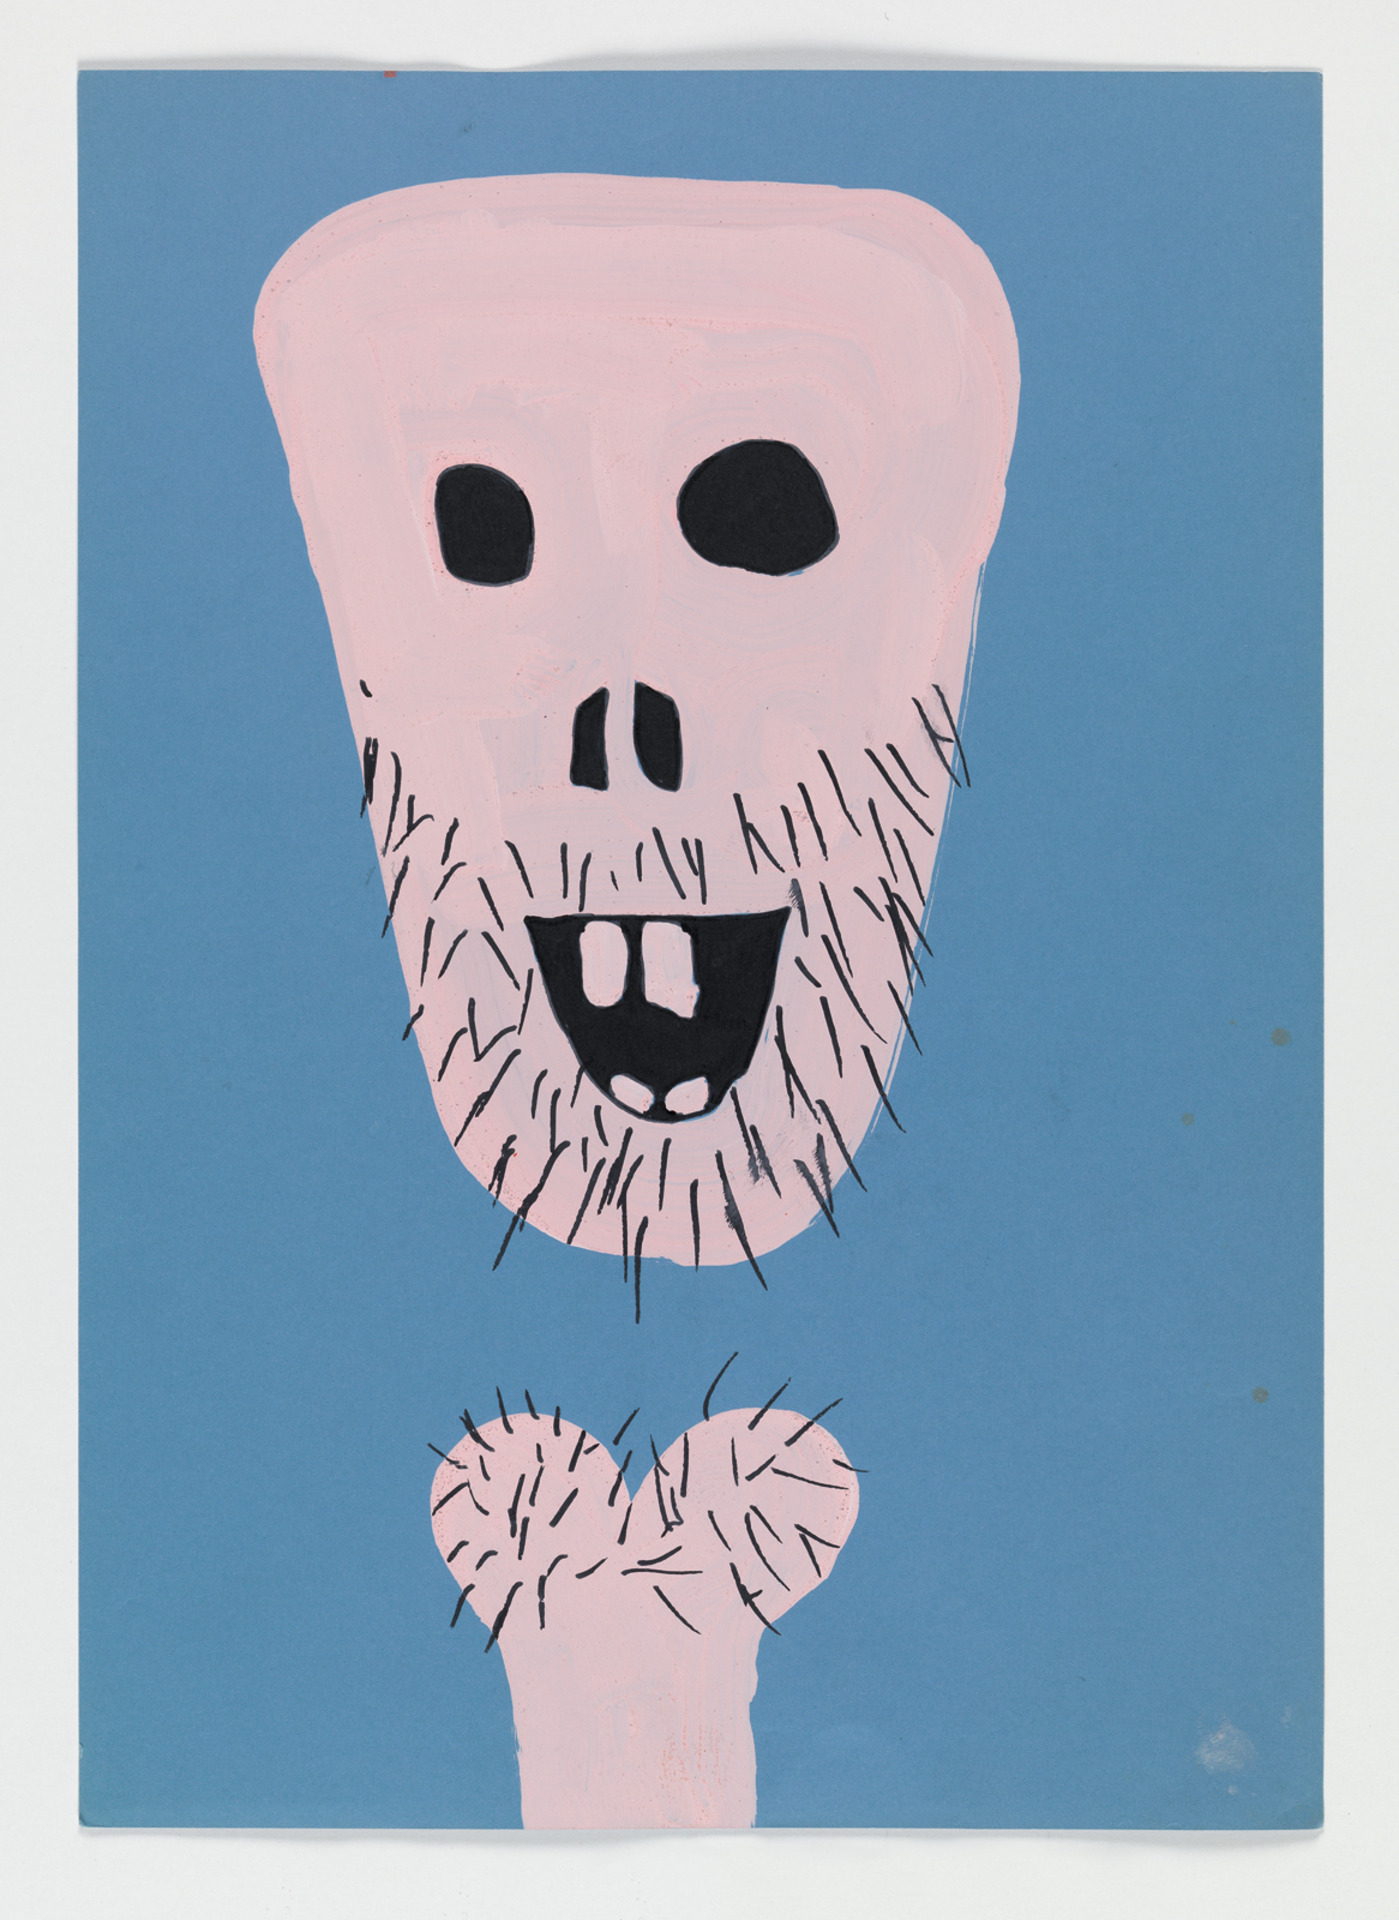 Untitled (Beard); Untitled (Cactus); Untitled (Mouths)